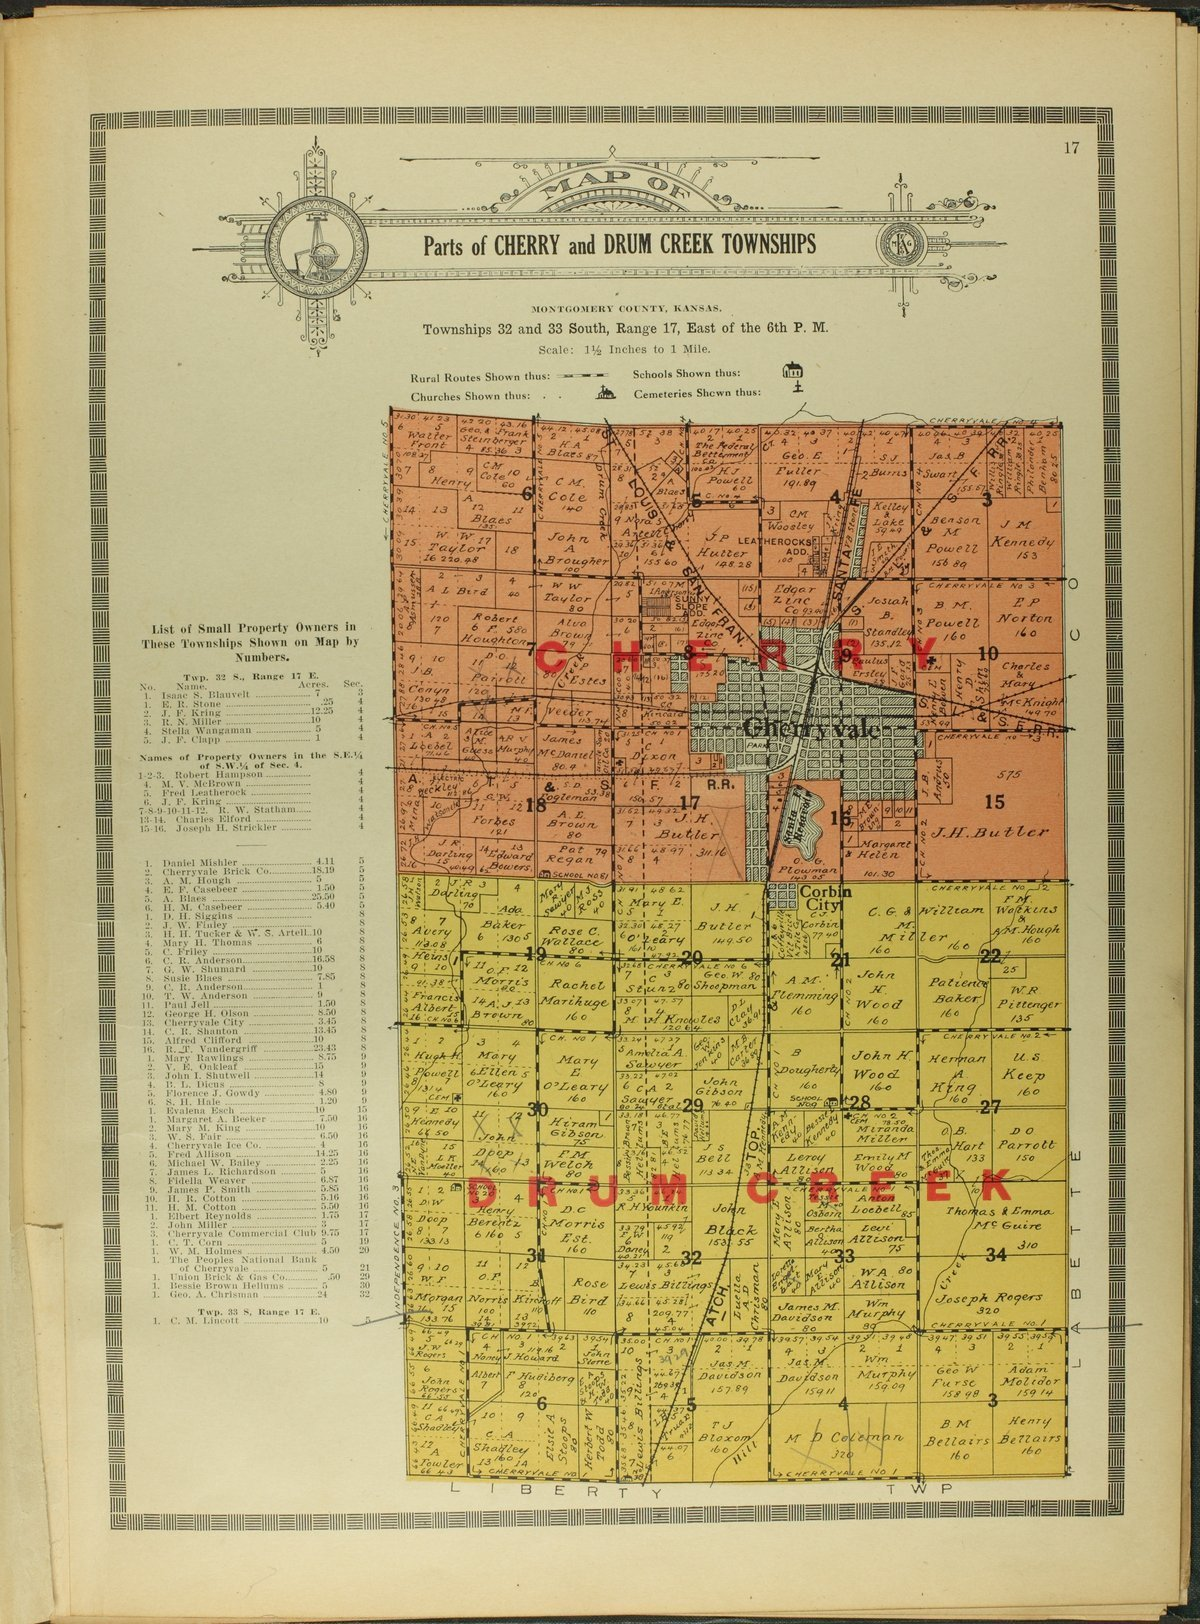 Atlas and plat book of Montgomery County, Kansas - 17